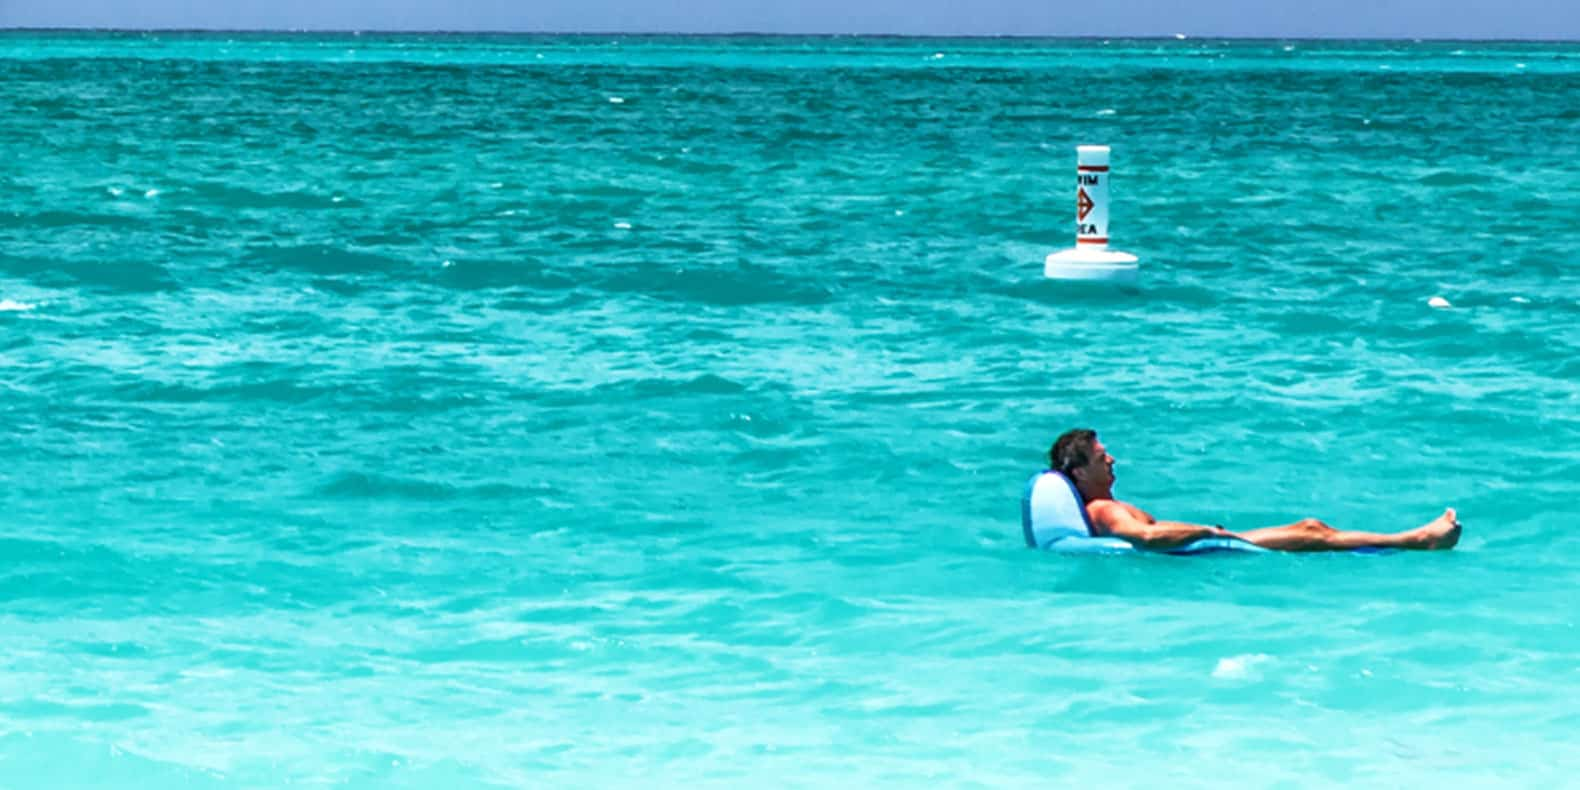 Photo of Billy McFarland floating on an inflatable recliner drifts in a turquoise blue ocean.